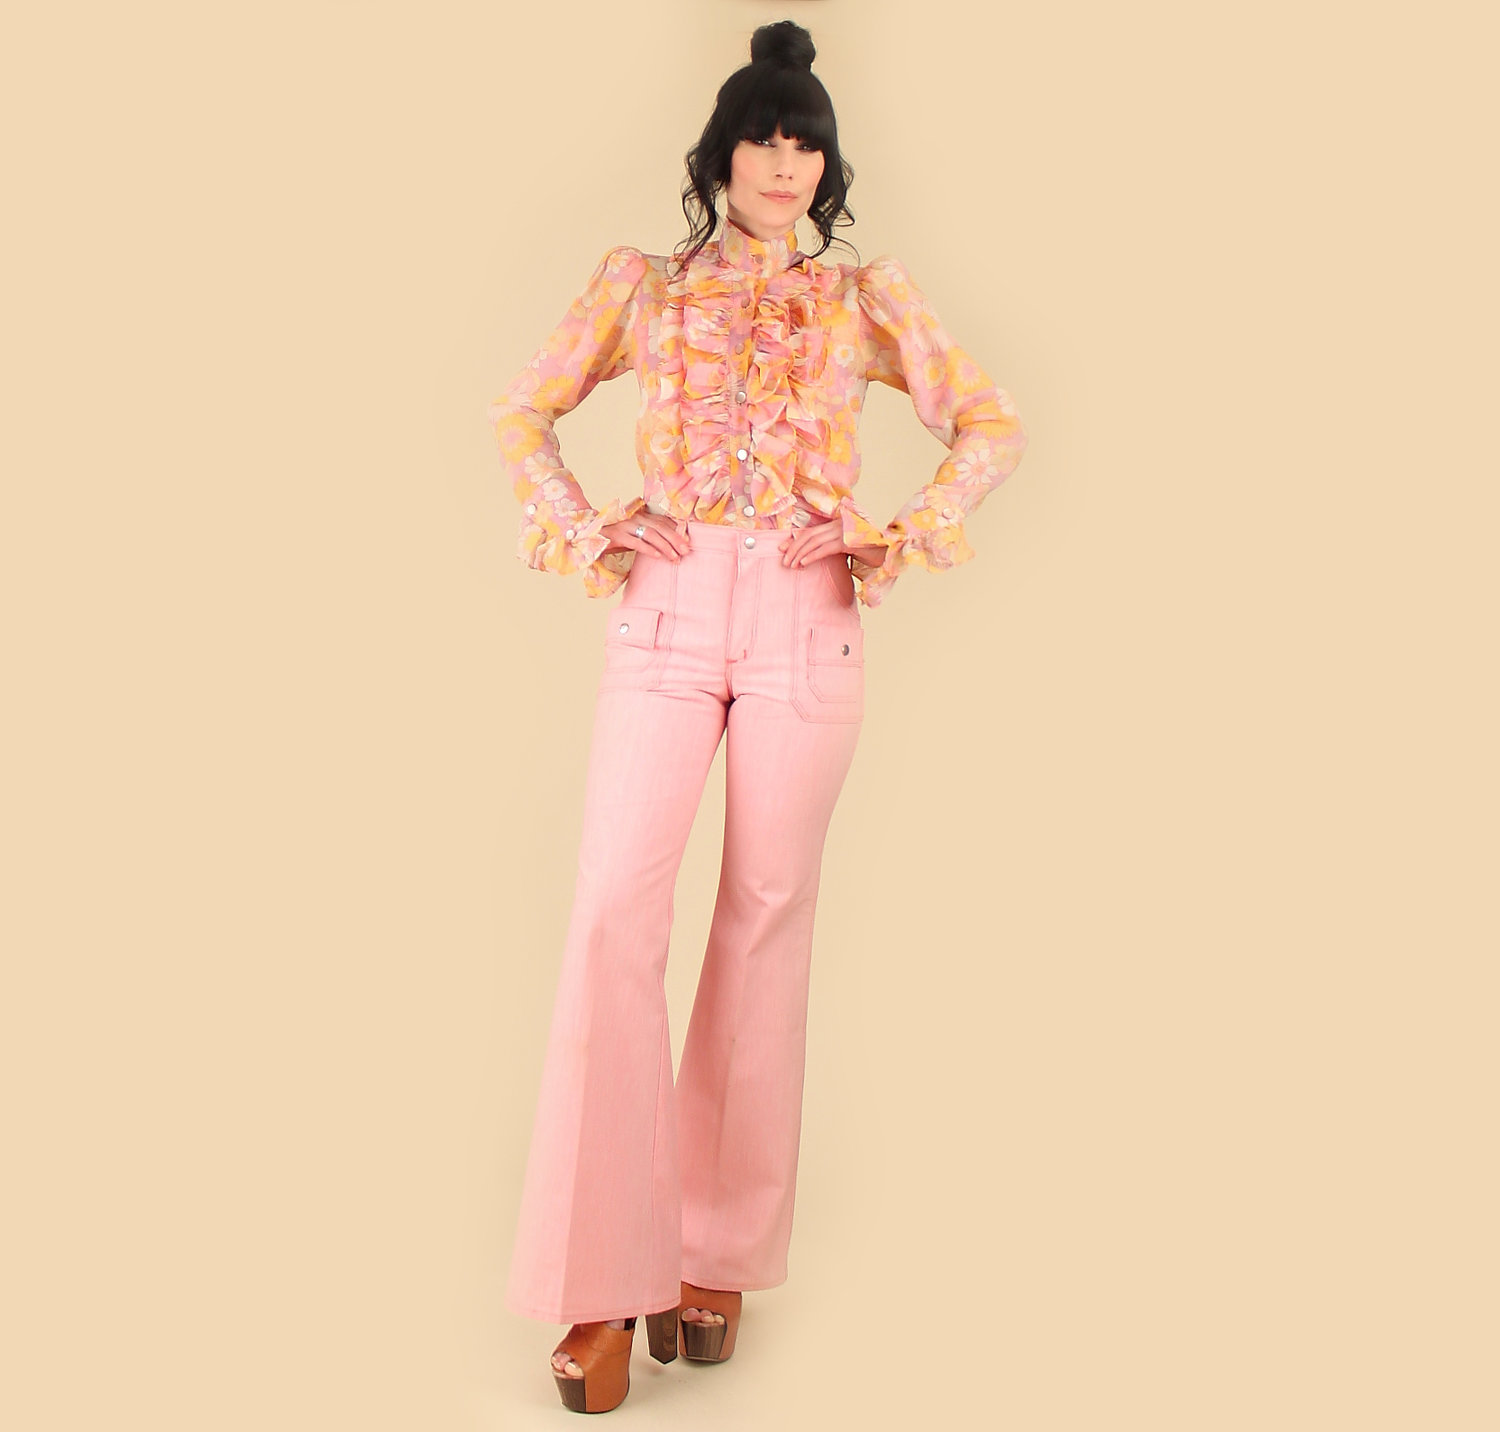 Vintage 70s Pink Bell Bottoms // DEADSTOCK // By Maverick